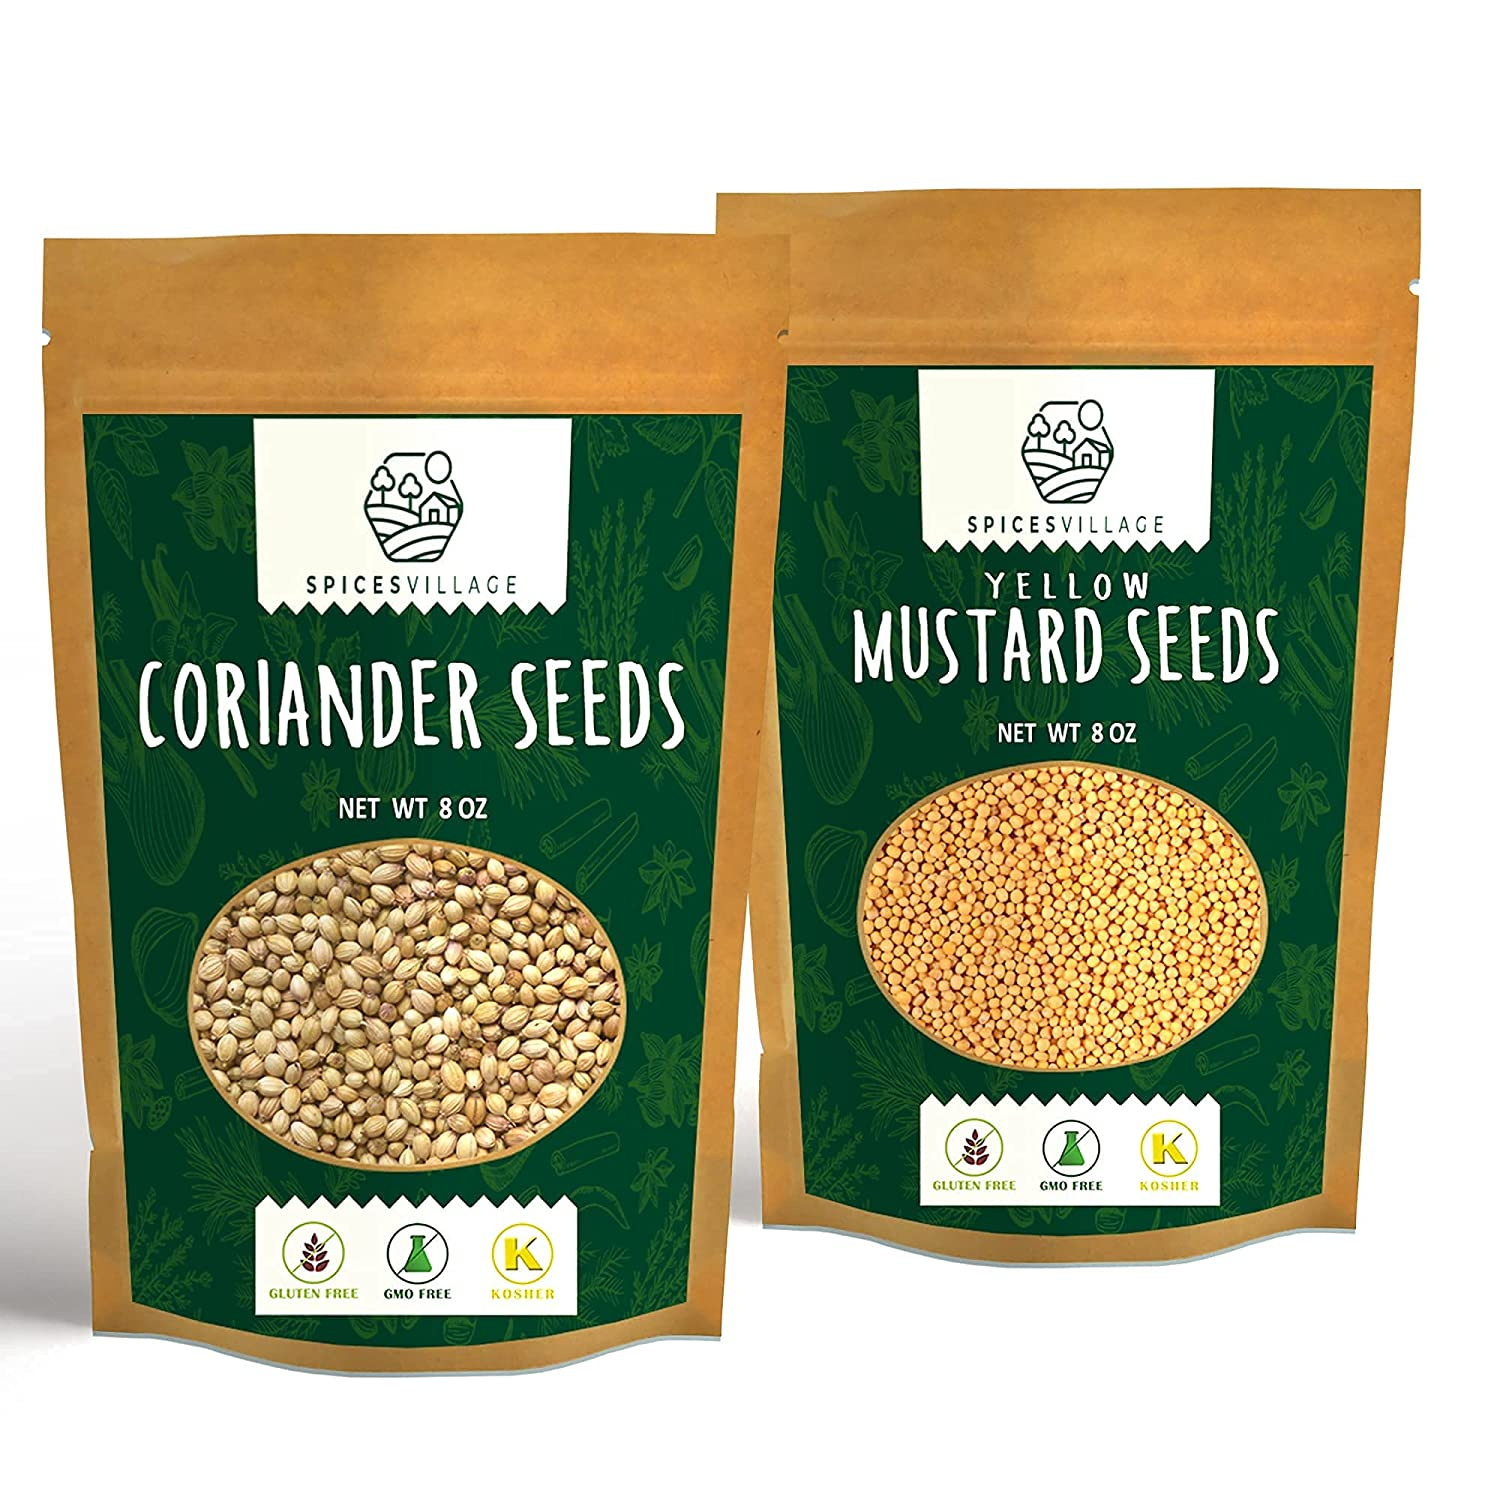 Online limited product Spices Village Pickling Kit Coriander Mustard and Latest item Seeds Yellow